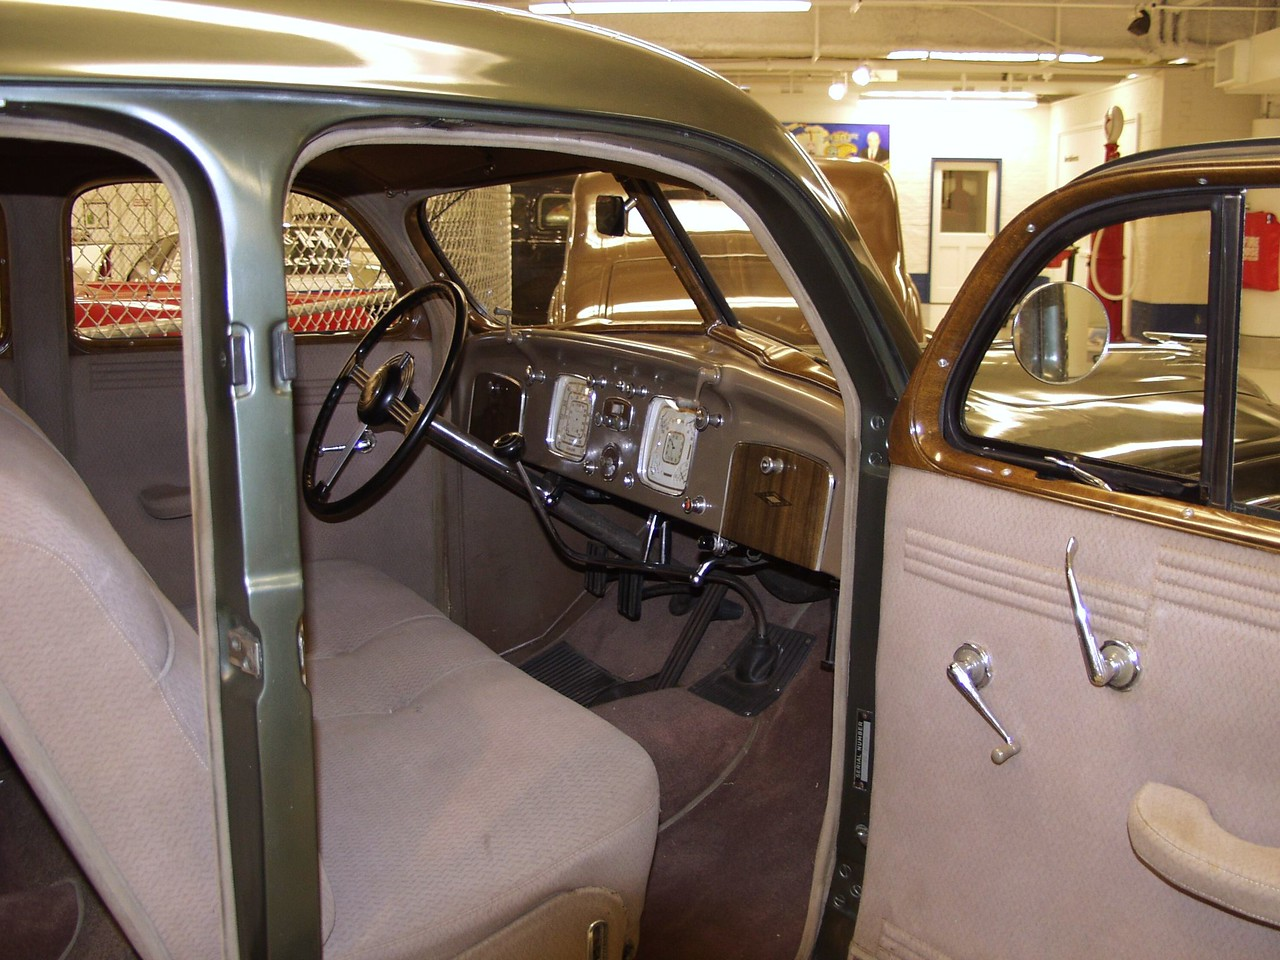 Interior of the 1936 Chrysler Imperial Airflow Sedan.